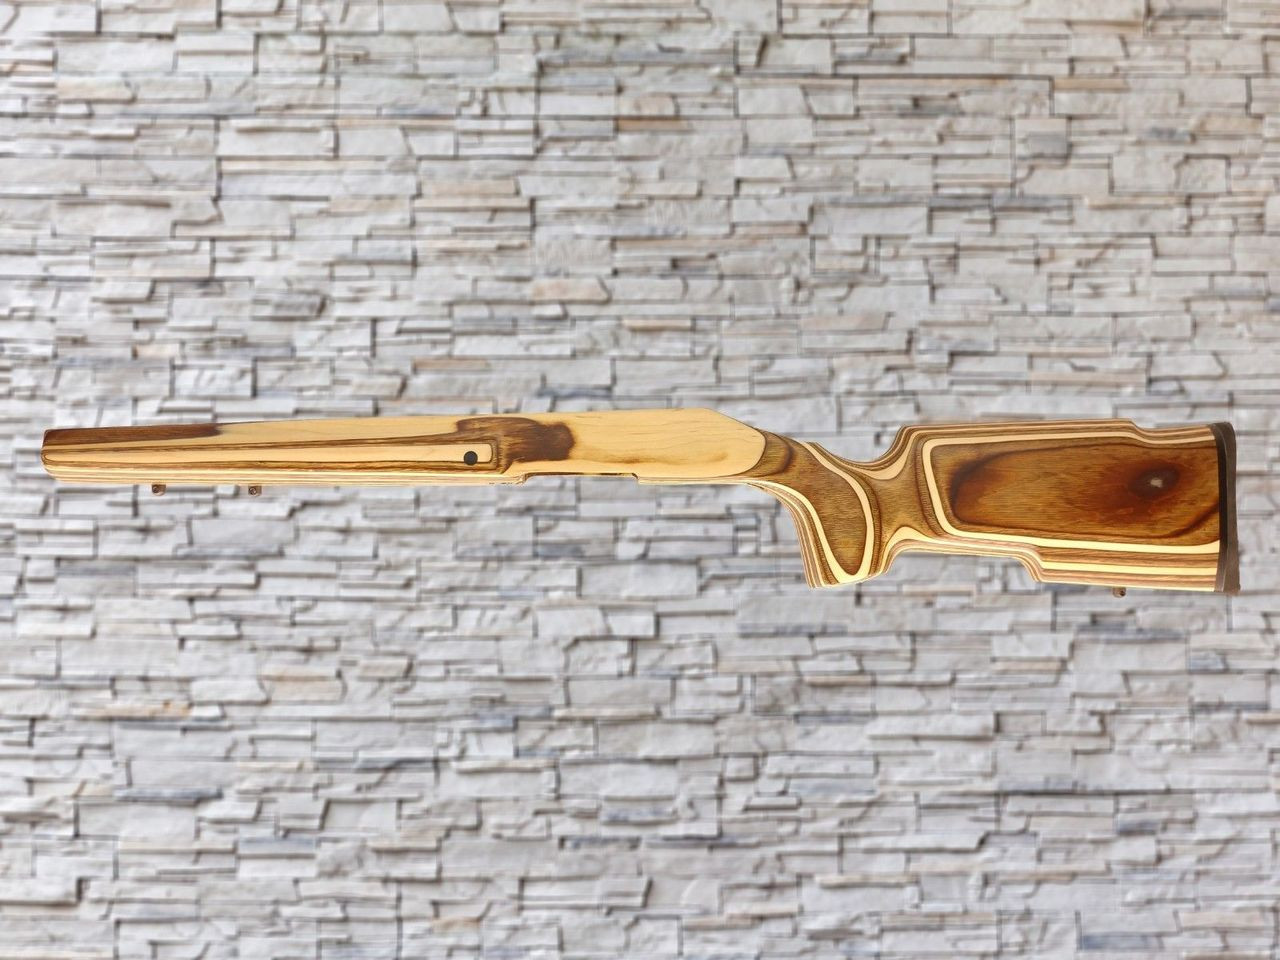 Boyds Pro Varmint Wood Stock Coyote for Ruger American Short Action Rifles